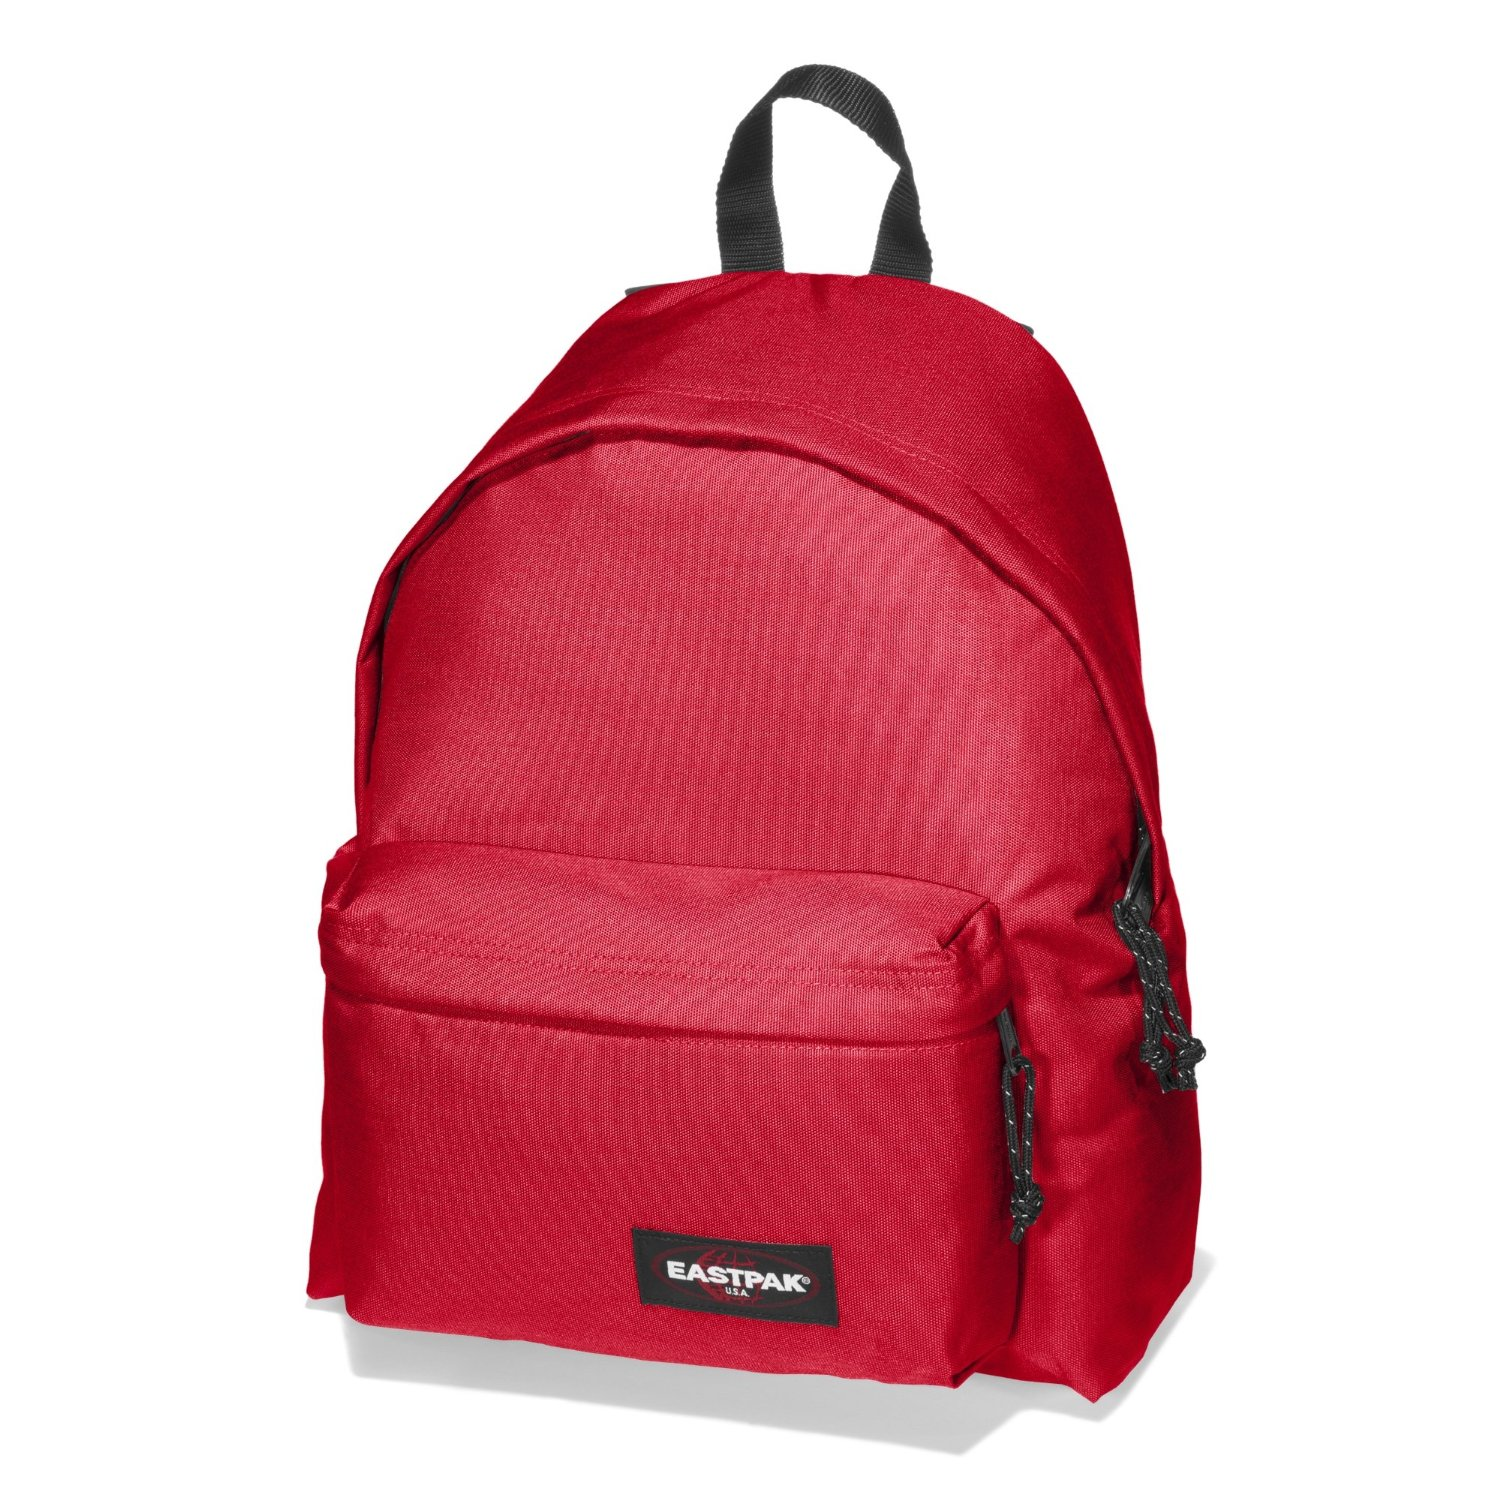 Eastpak Padded Pak'r EK620_53B Unisex School Backpack Bag 24L - Red